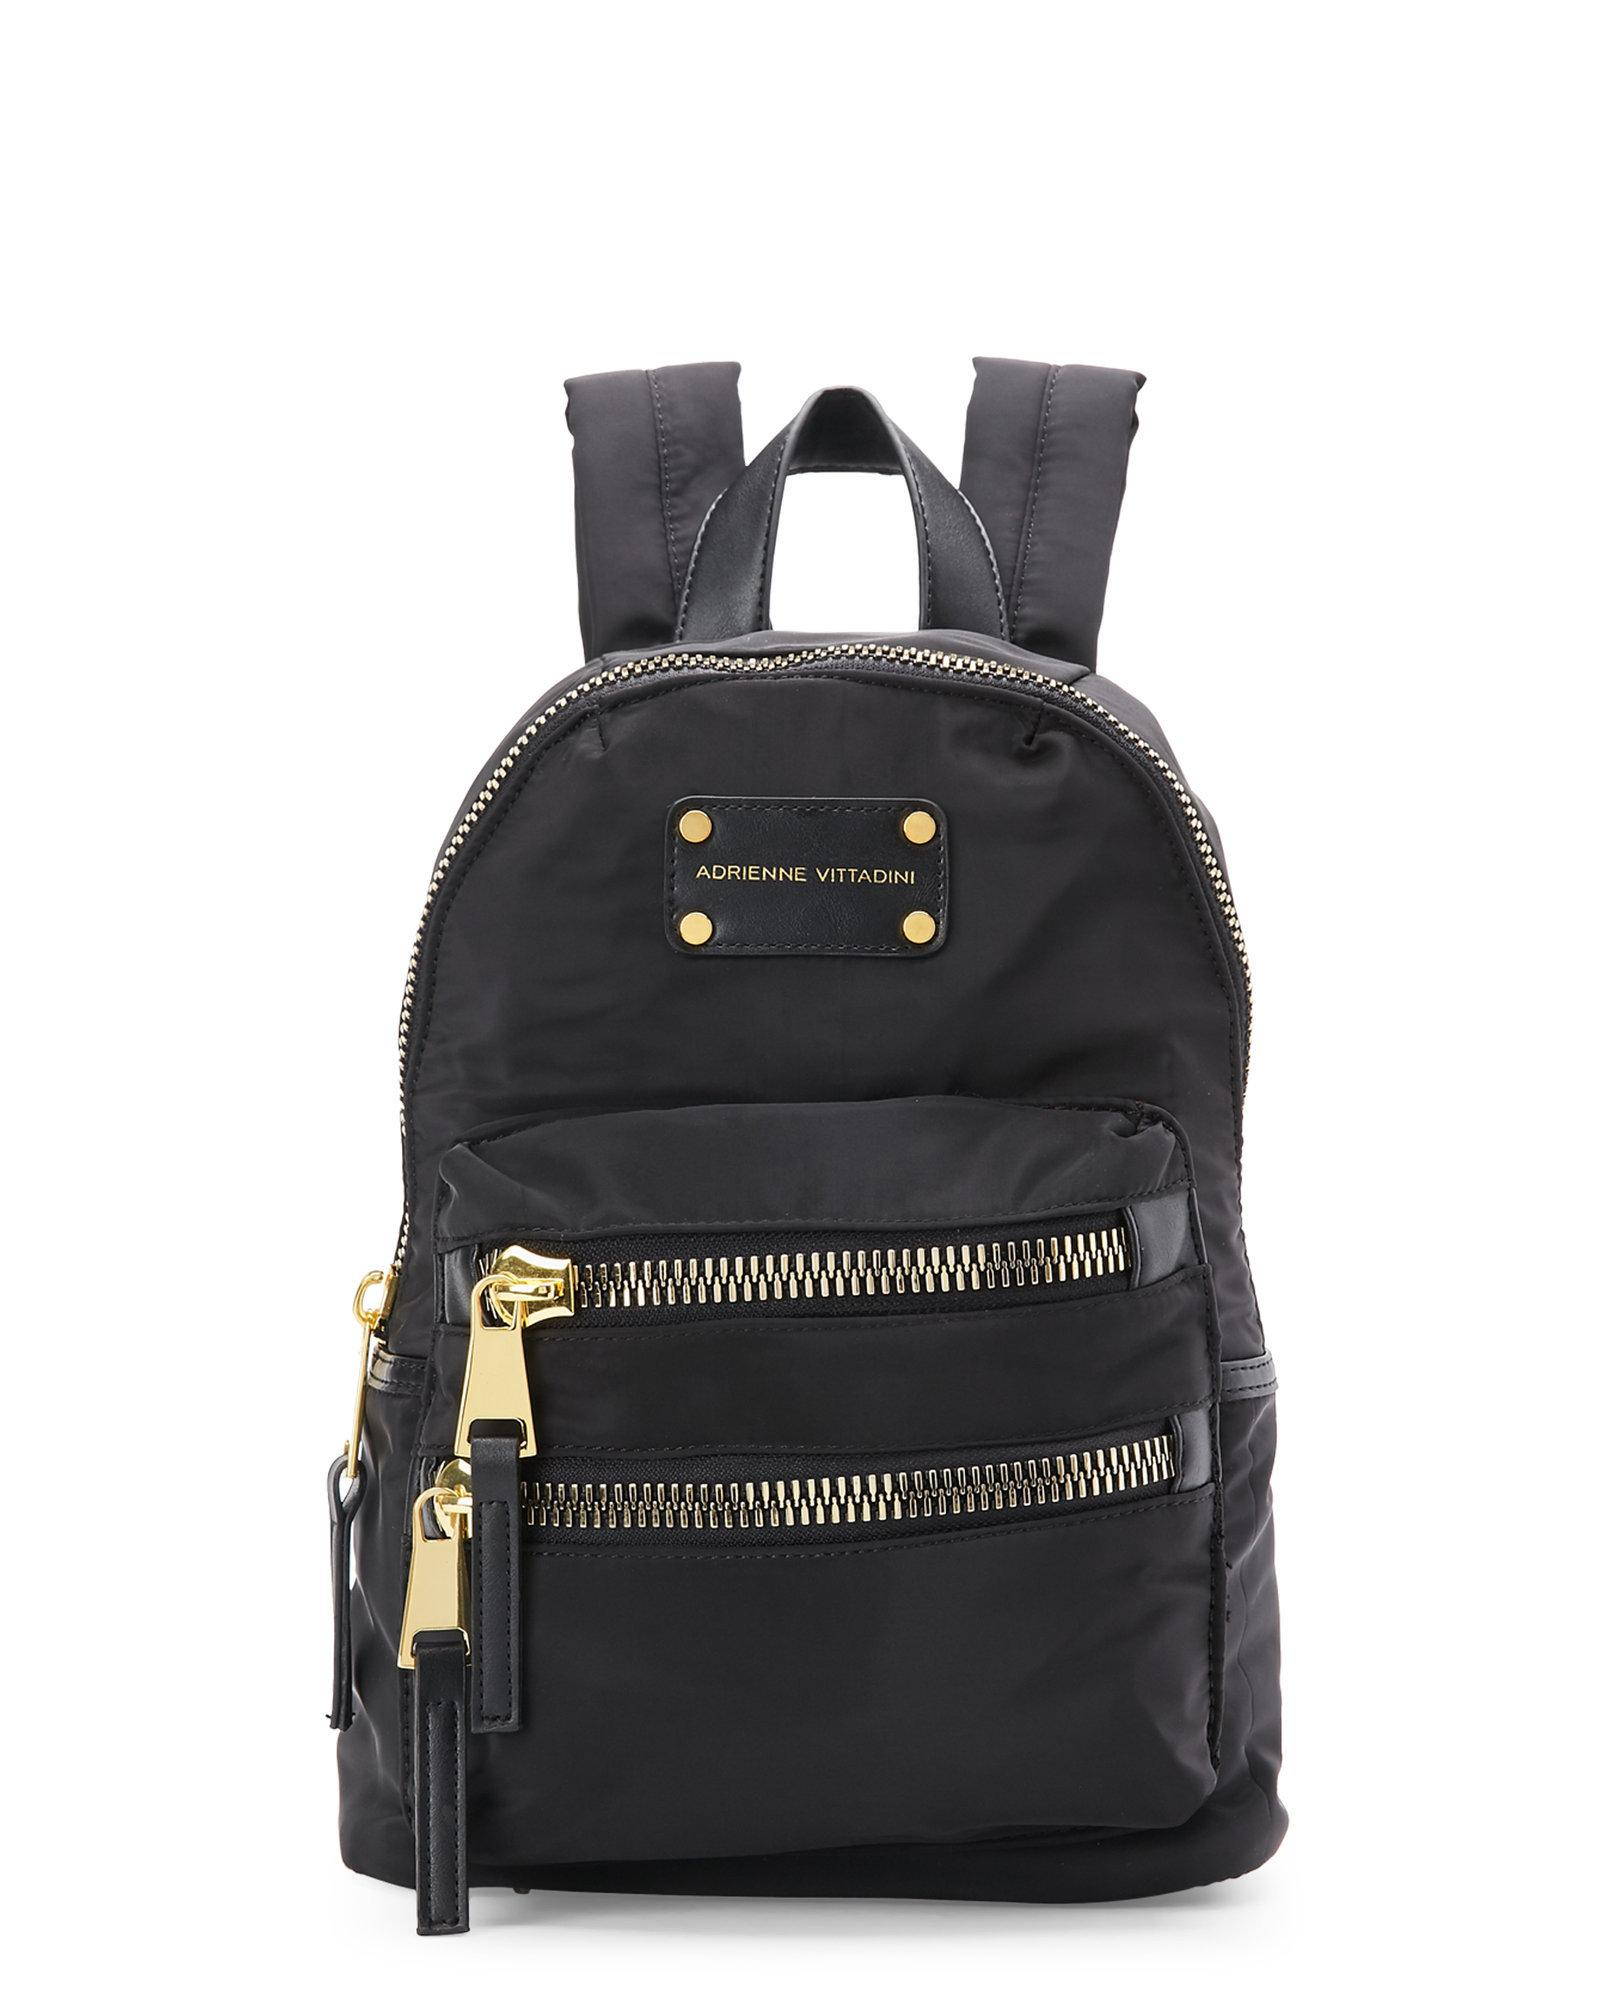 Adrienne vittadini Black & Gold Small Nylon Backpack in Black | Lyst